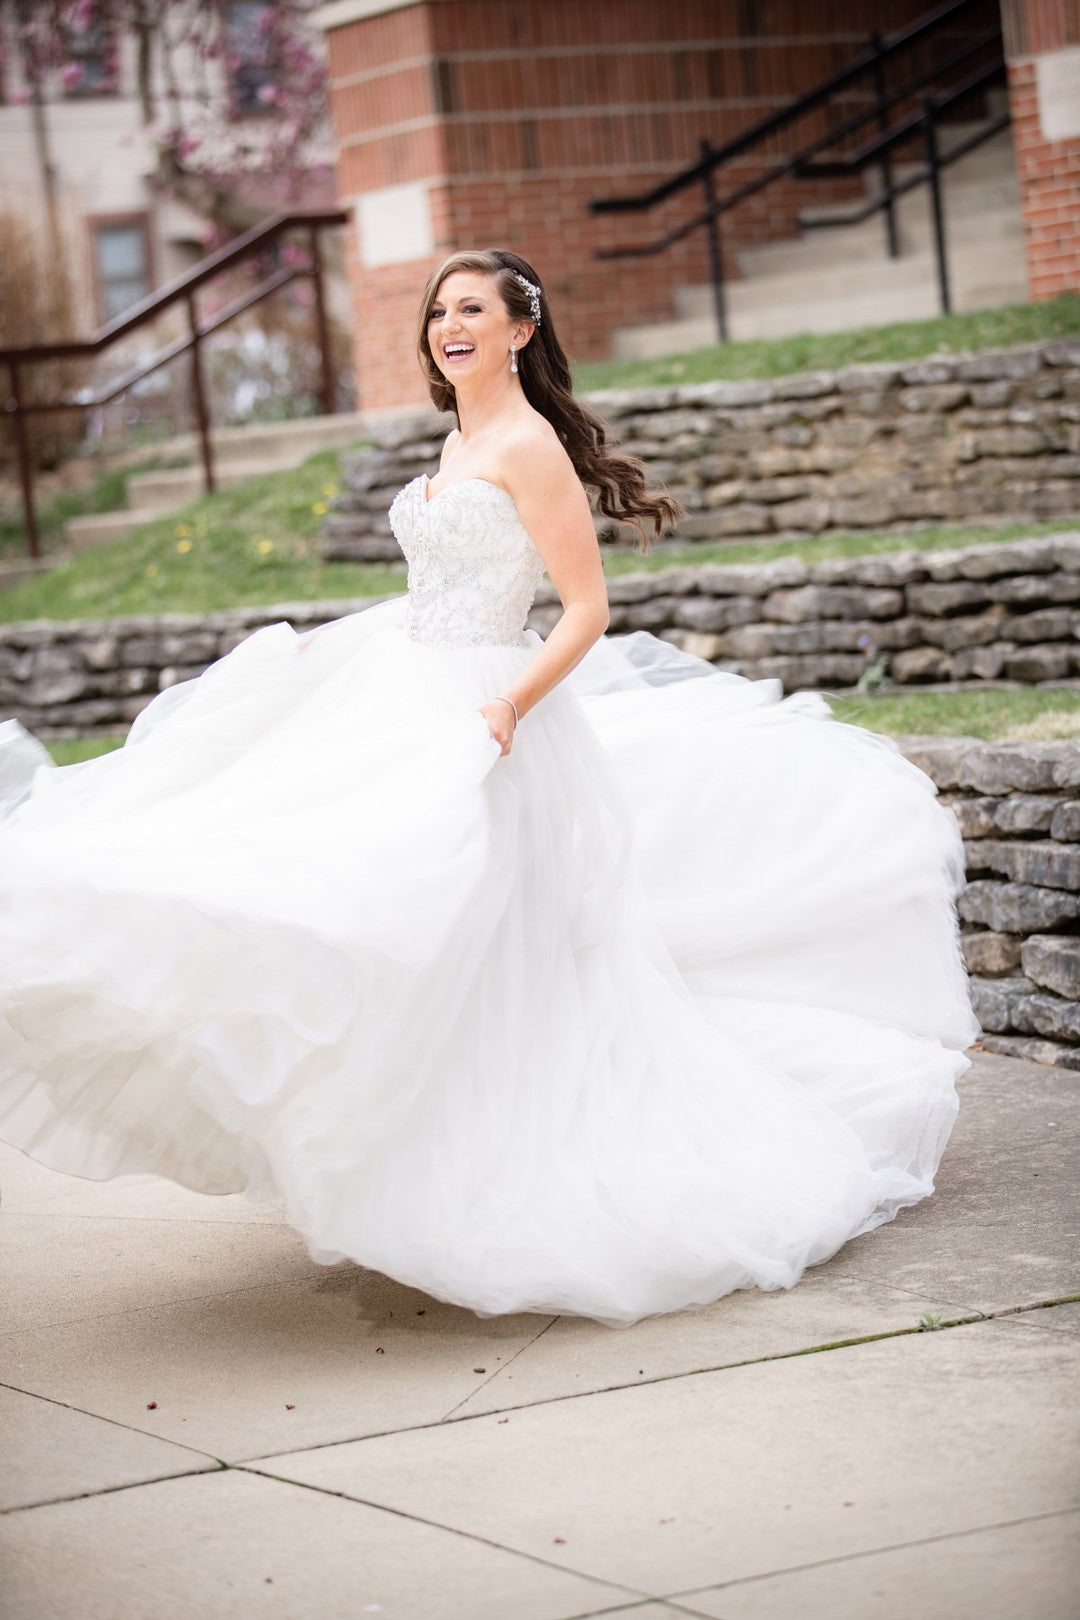 Bride Twirling In Gown | A Gorgeous Grand Wedding in Ohio | Kate Aspen